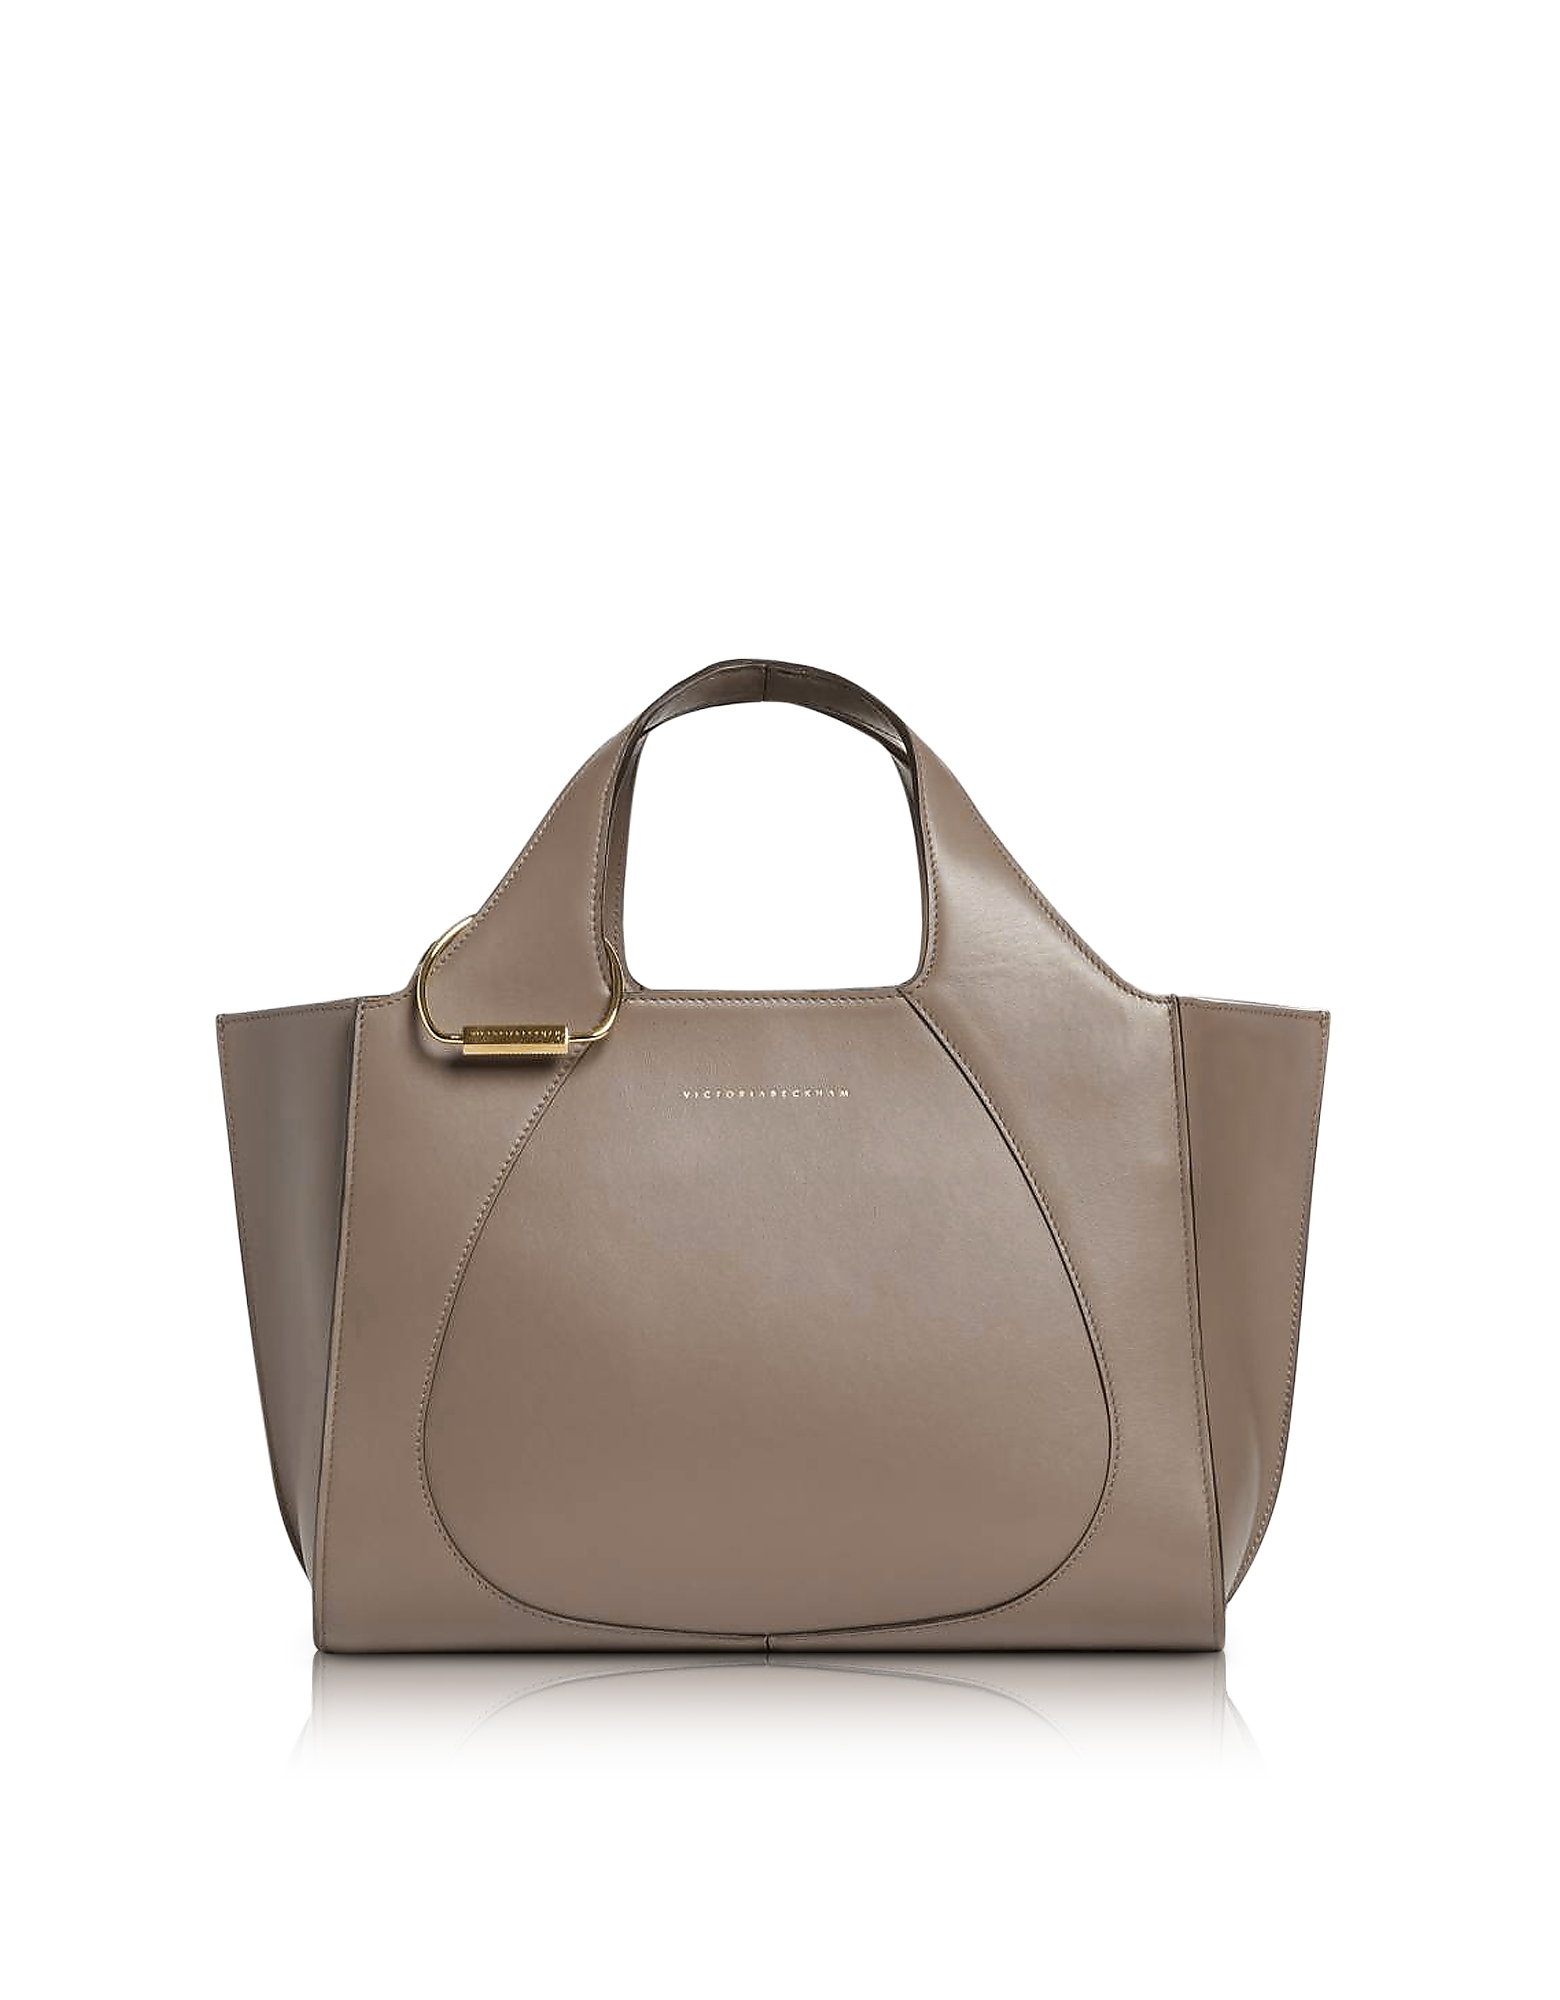 Dove Grey Leather Small Newspaper Tote Bag